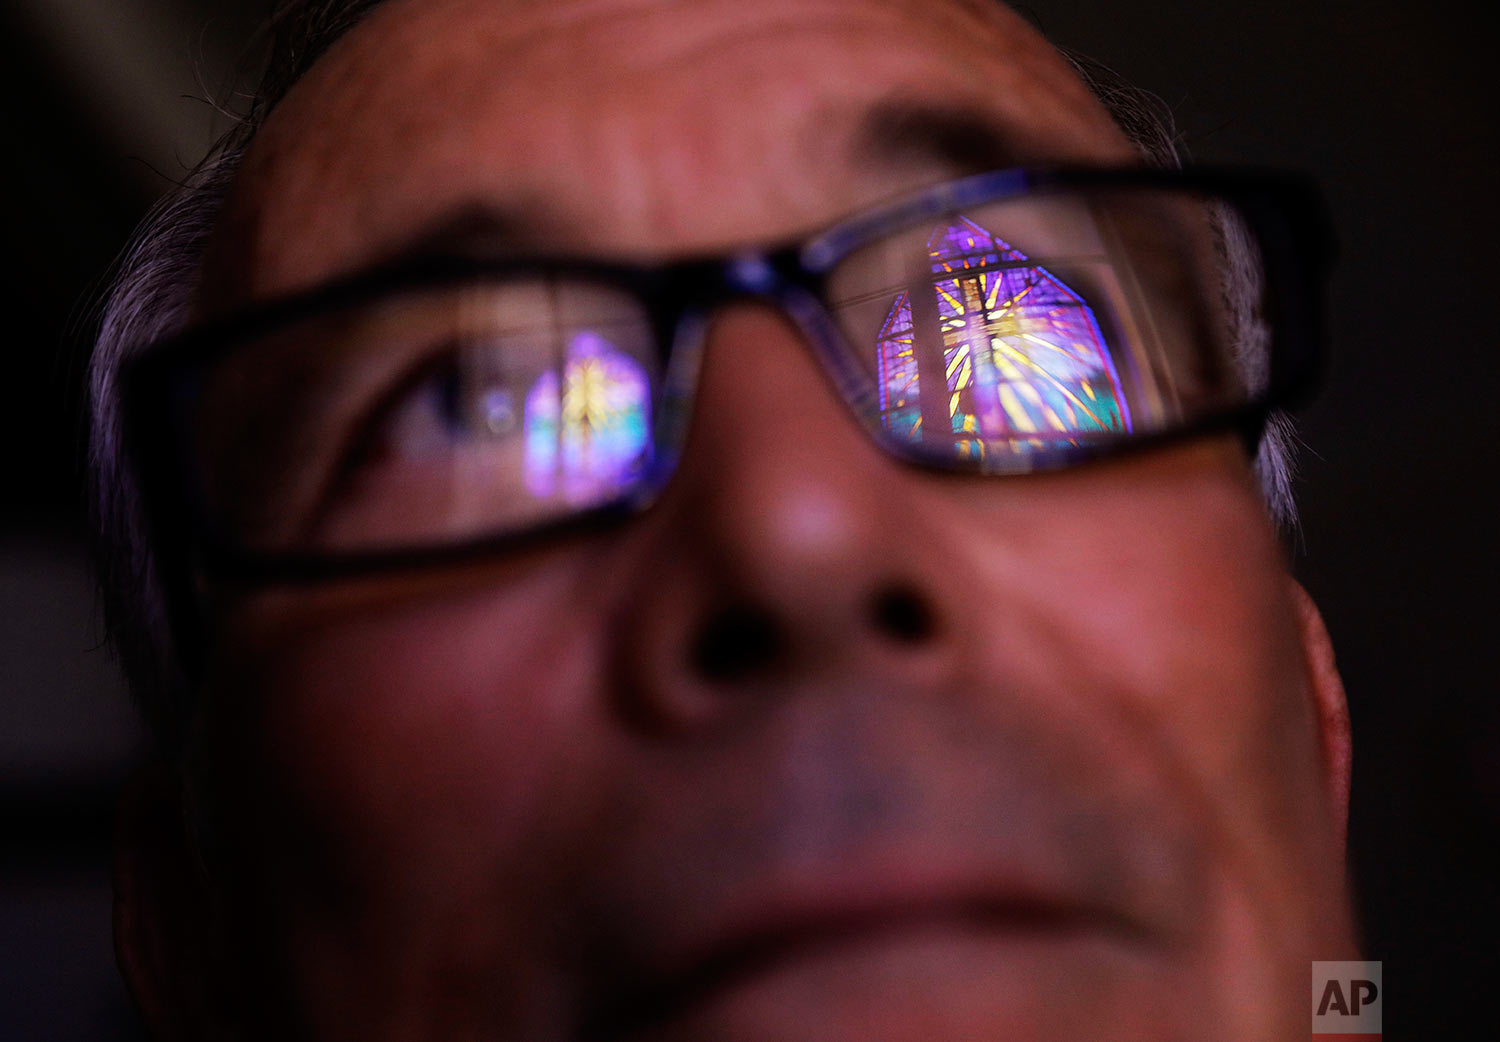 """Wayne Christopher stands for a portrait in Port Arthur, Texas, Monday, Sept. 25, 2017, as a stained glass window is reflected in his glasses in the damaged sanctuary of the Memorial Baptist Church he'd attended his whole life. After the previous month's Hurricane Harvey, he said, """"I think the Lord put us over the care of his creation, and when we pollute like we do, destroy the land, there's consequences to that,"""" he said. """"And it might not catch up with us just right now, but it's gonna catch up. Like a wound that needs to be healed."""" (AP Photo/David Goldman)"""